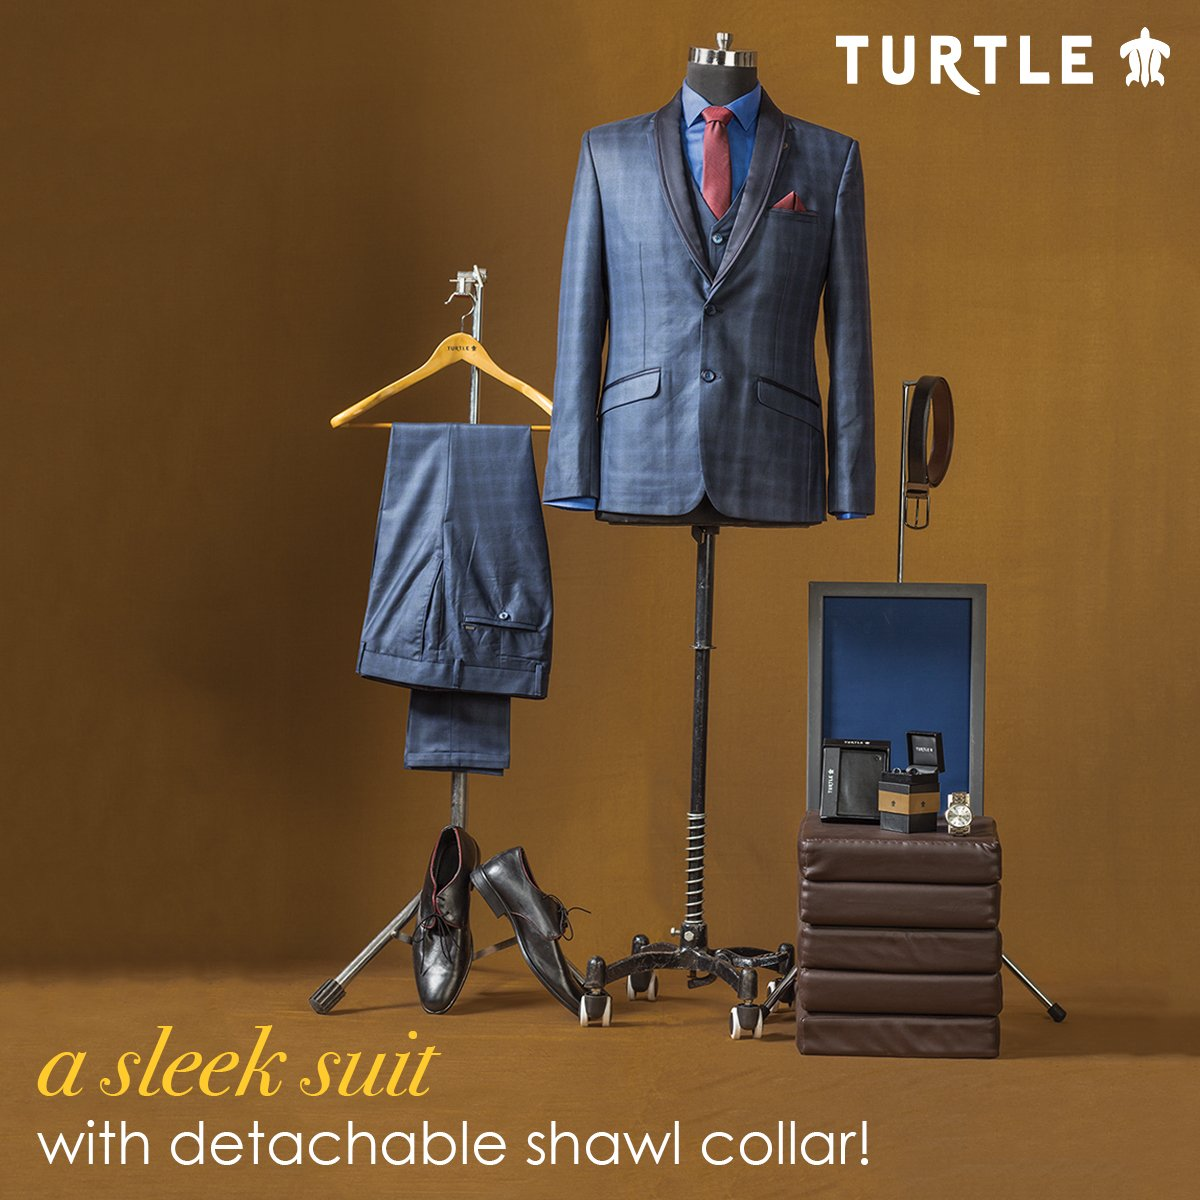 0dc14c2412a ...  Turtle  WhyTurtle  WhyNotTurtle  Suit  Shirt  MensFashion  WinterWear   WinterCollection  turtleonline inpic.twitter.com q4P4xRMfkx